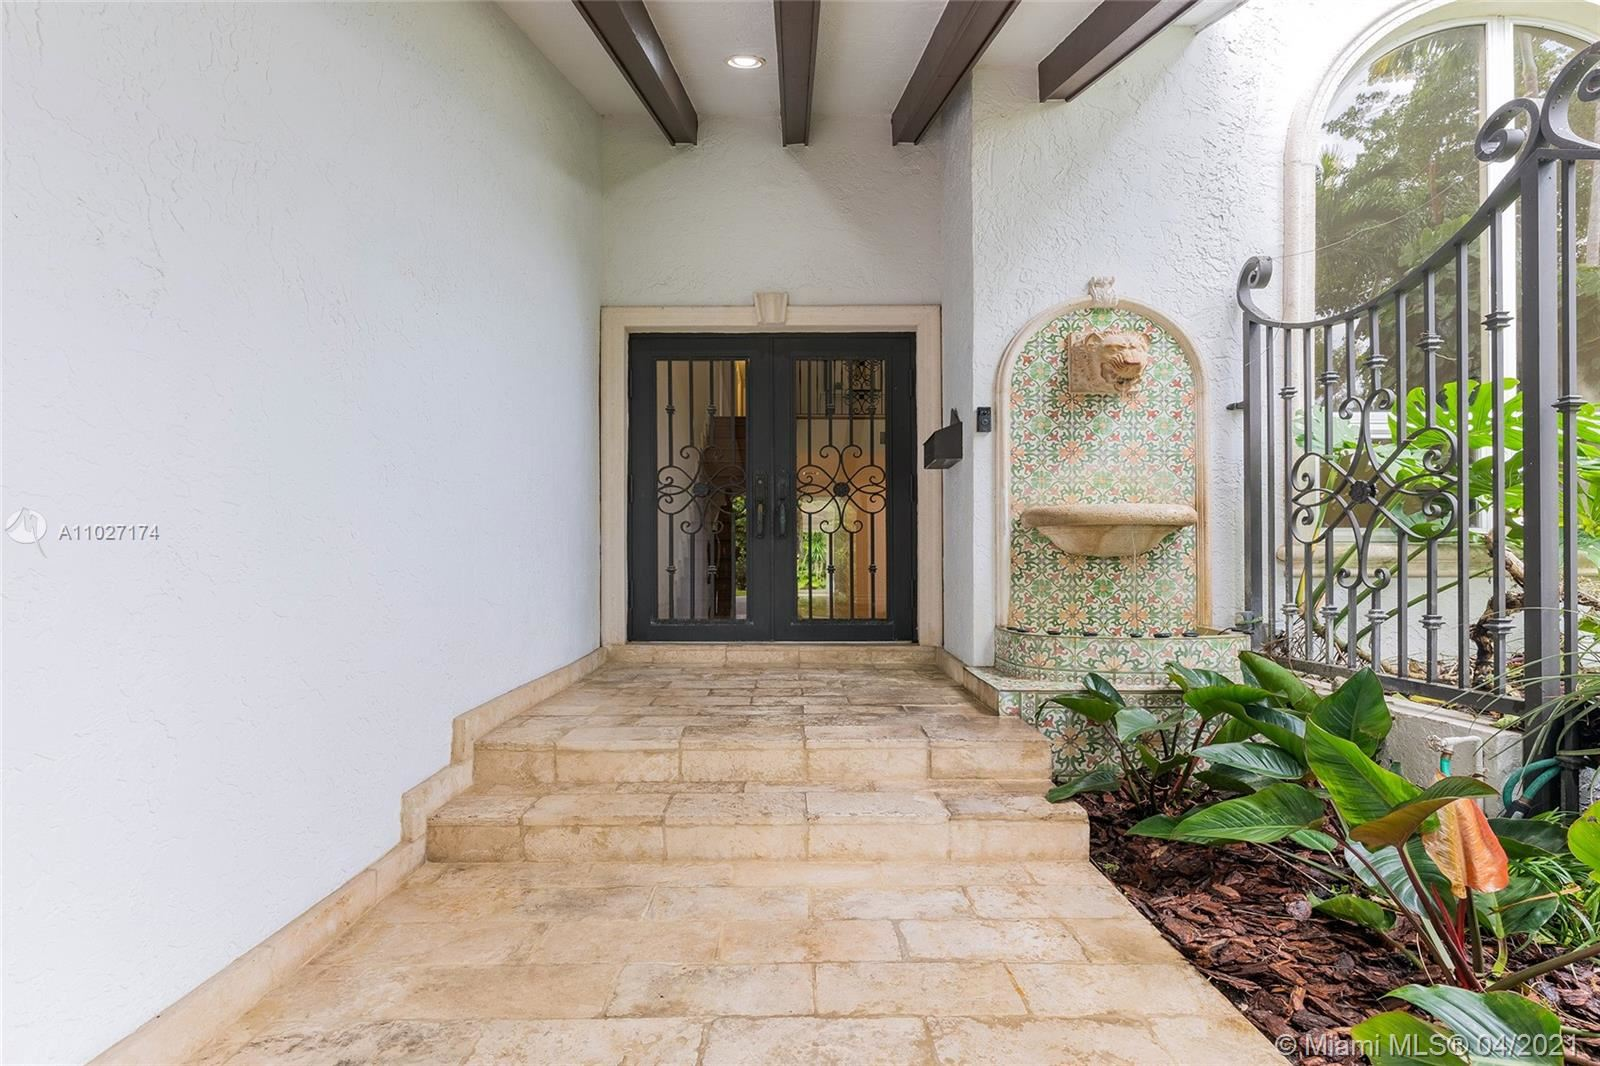 Photo of Coral Gables, FL 33134 (MLS # A11027174)